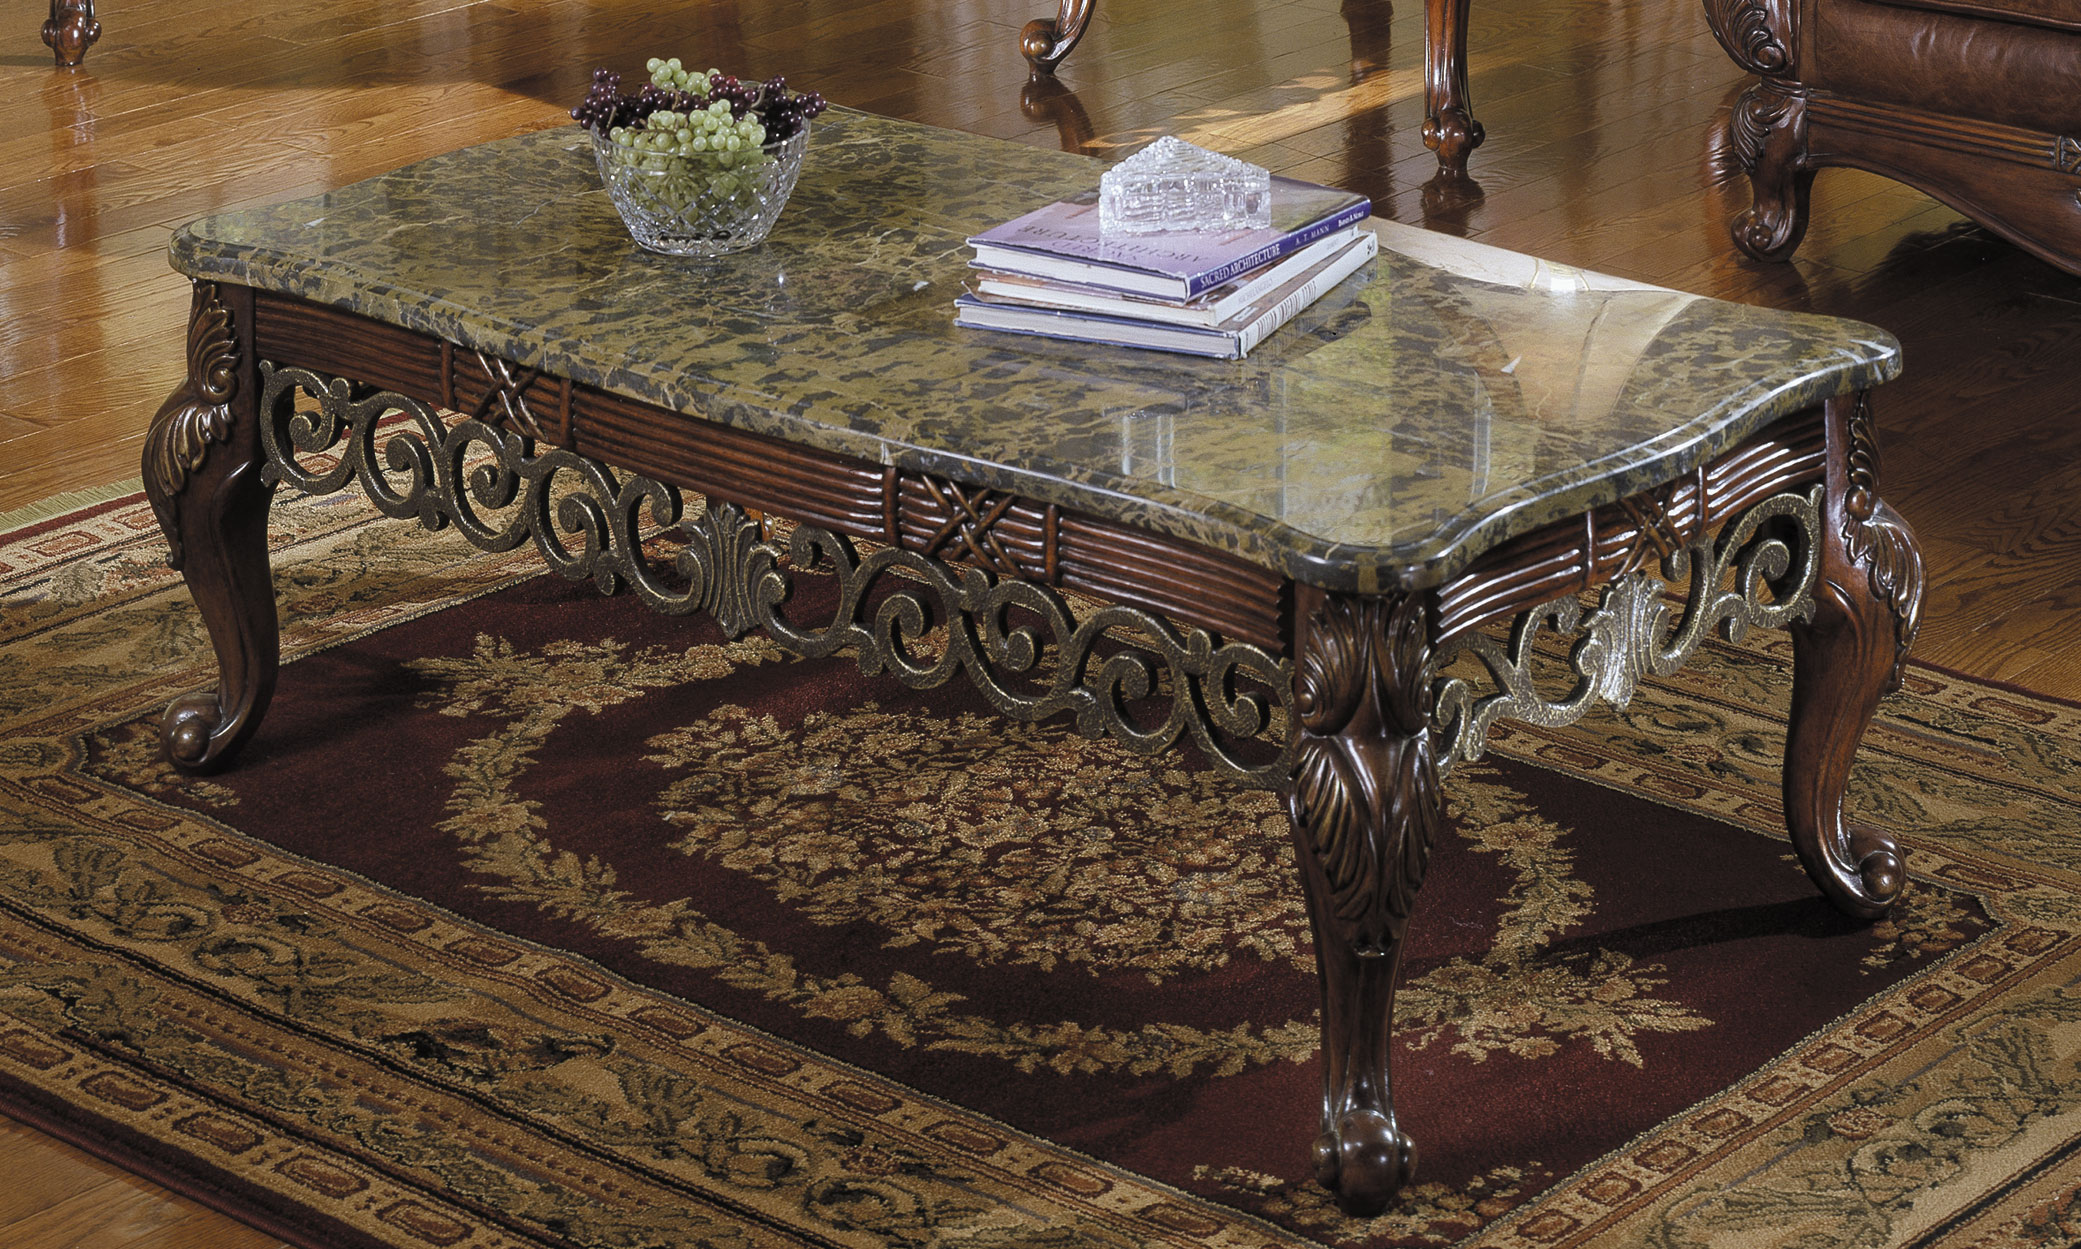 Vintage Granite Coffee Table Image And Description